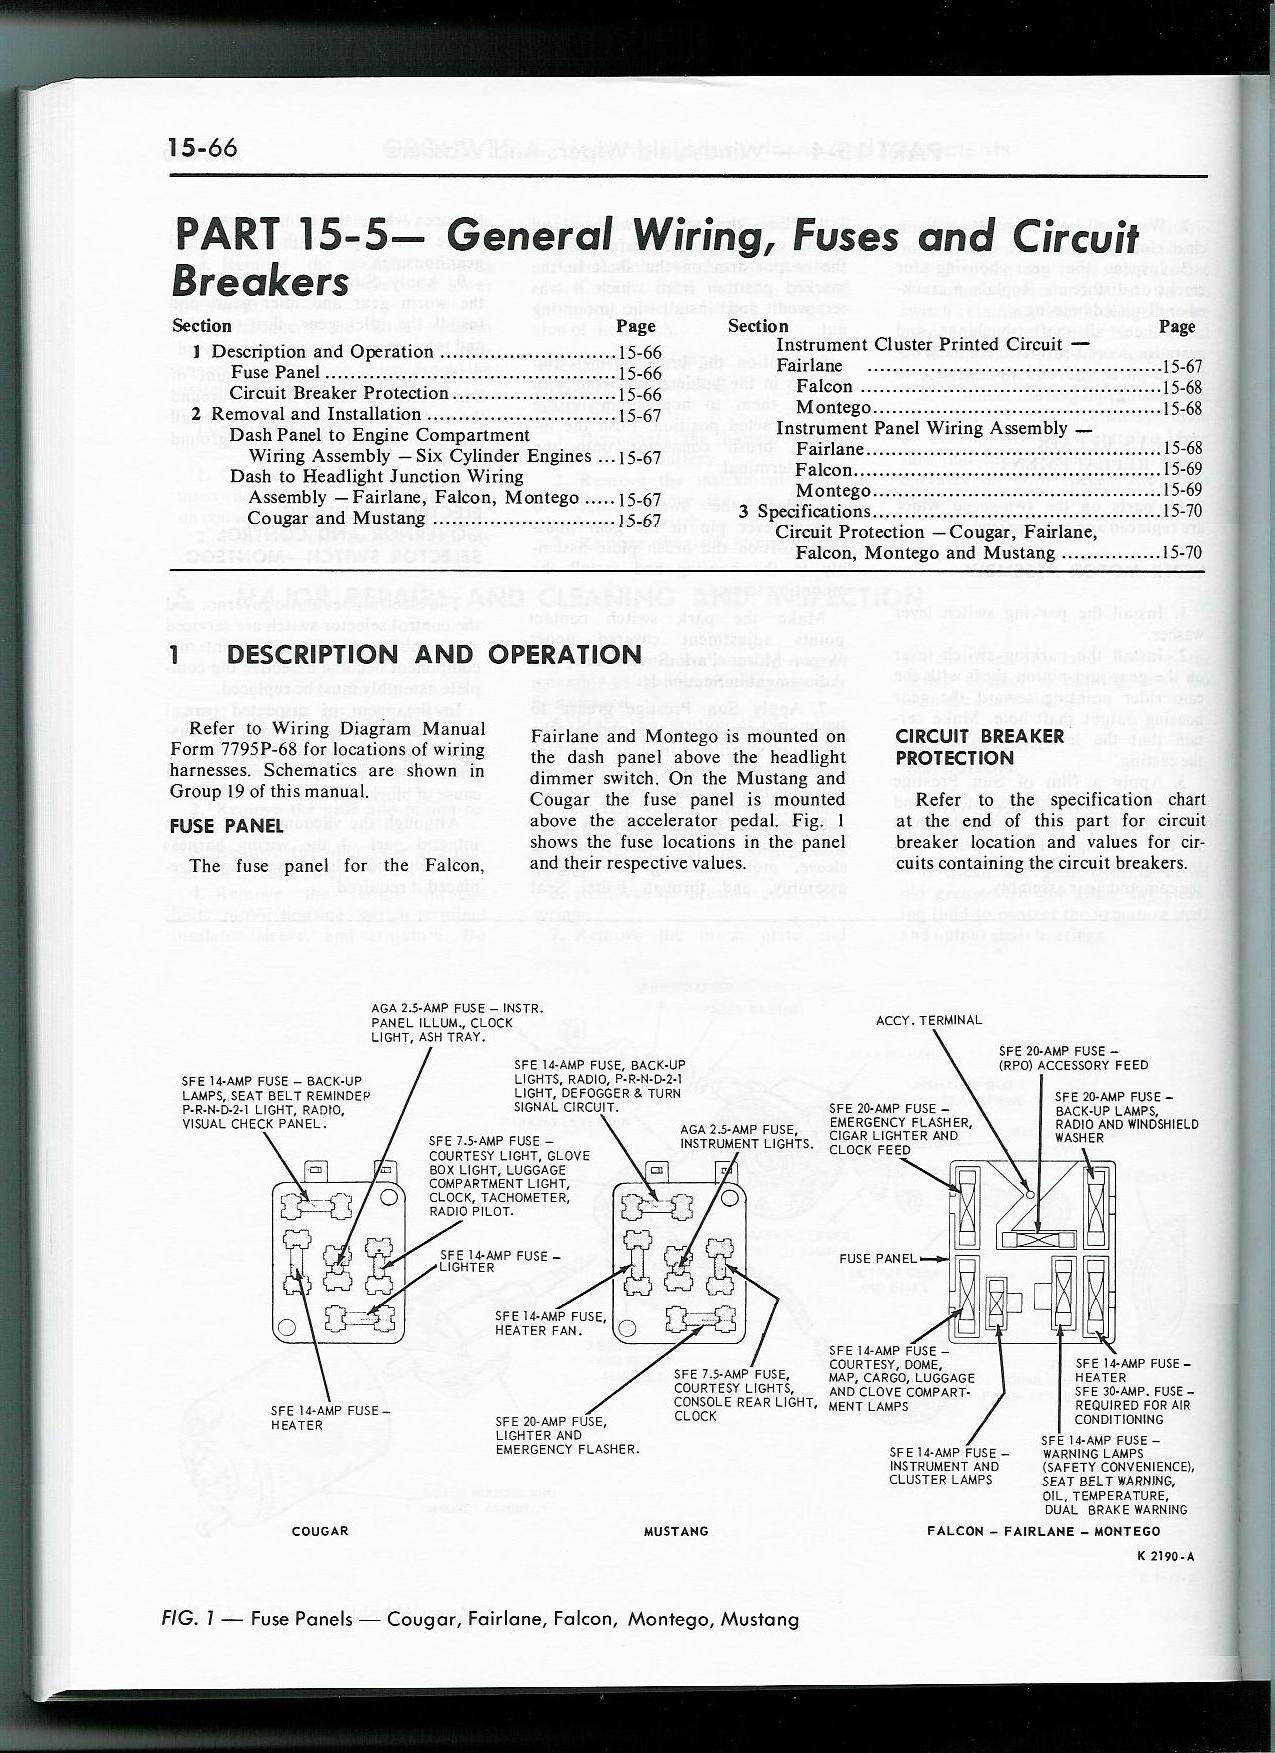 Wiring Diagram For T5 Conversion 1966 Mustang Coupe Fuse Block Question Ford Mustang